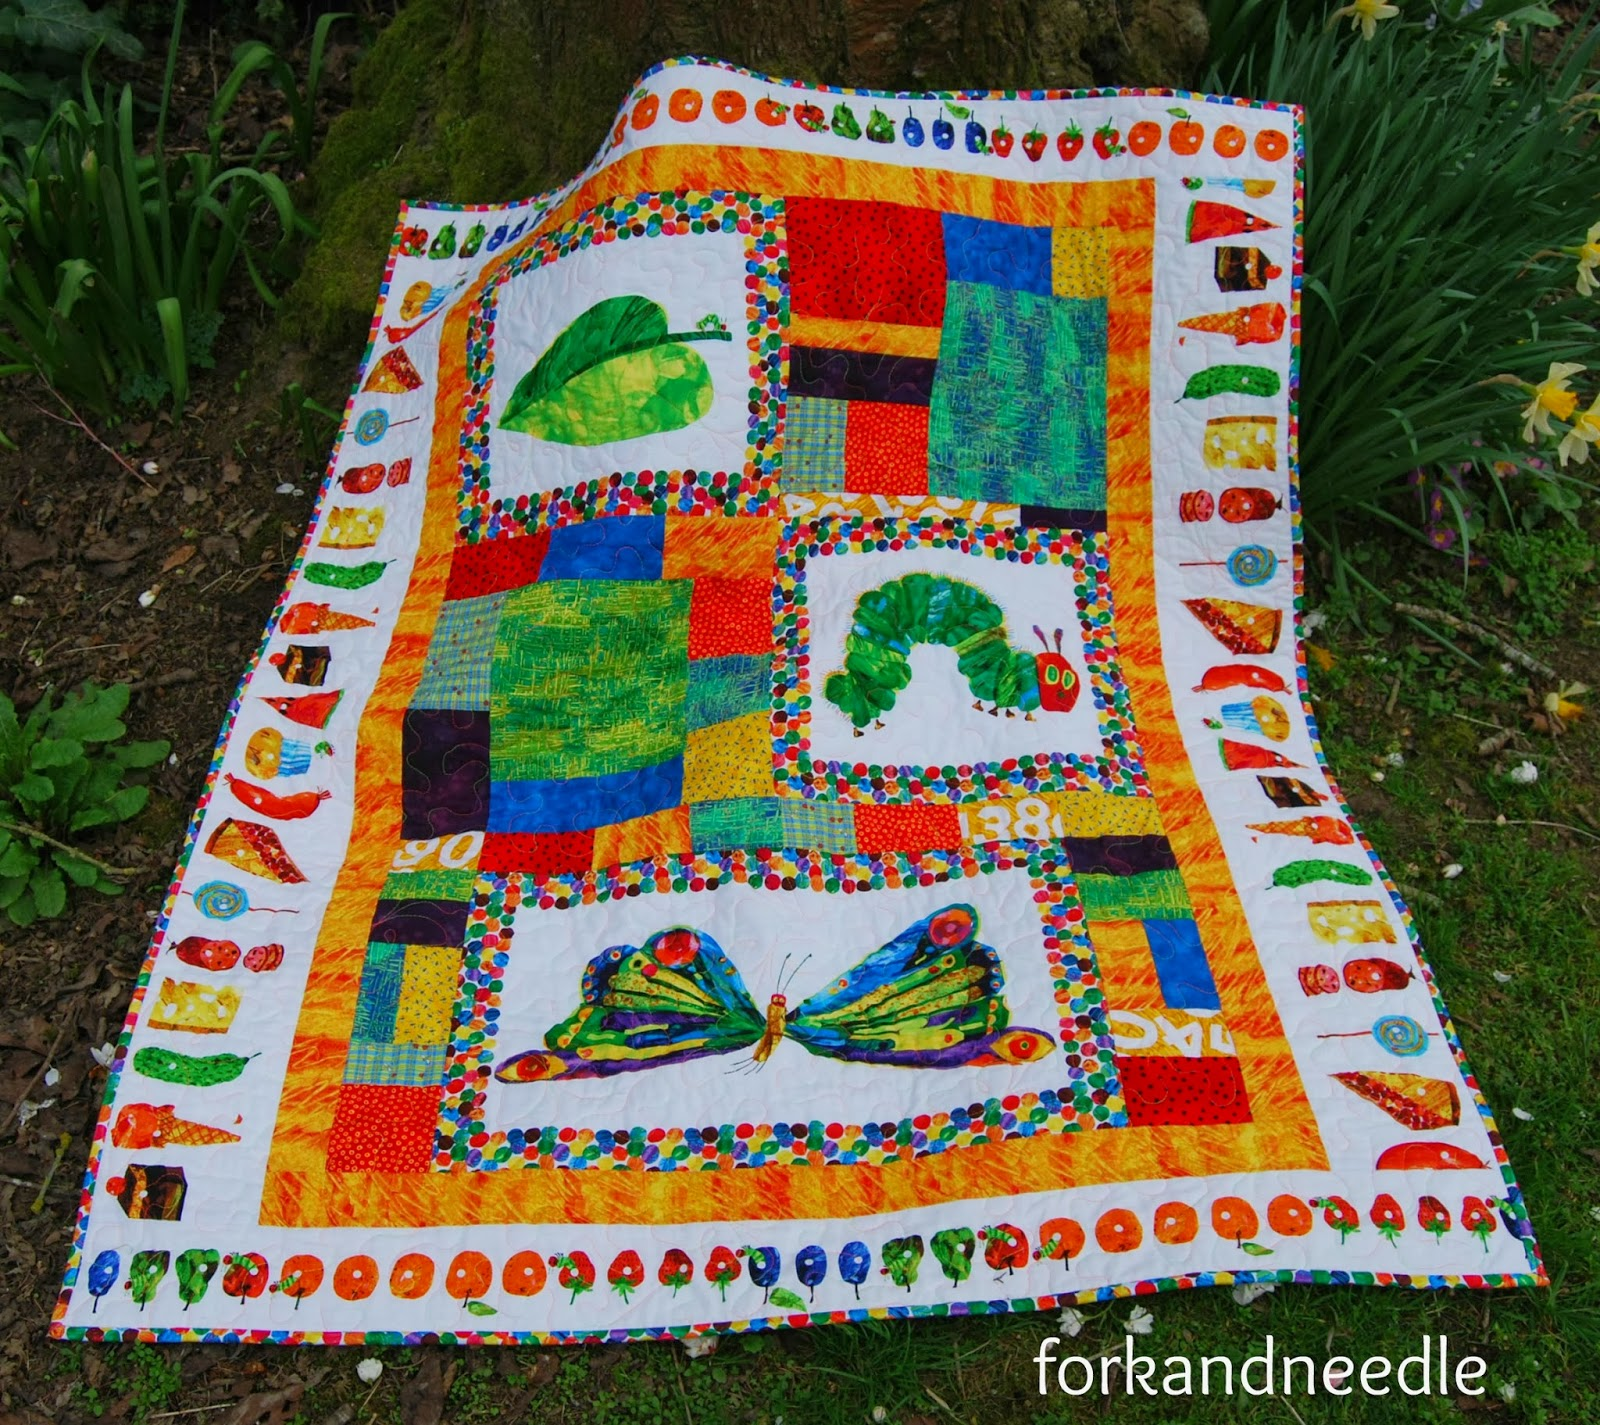 Forkandneedle: Finally... A Very Hungry Caterpillar!